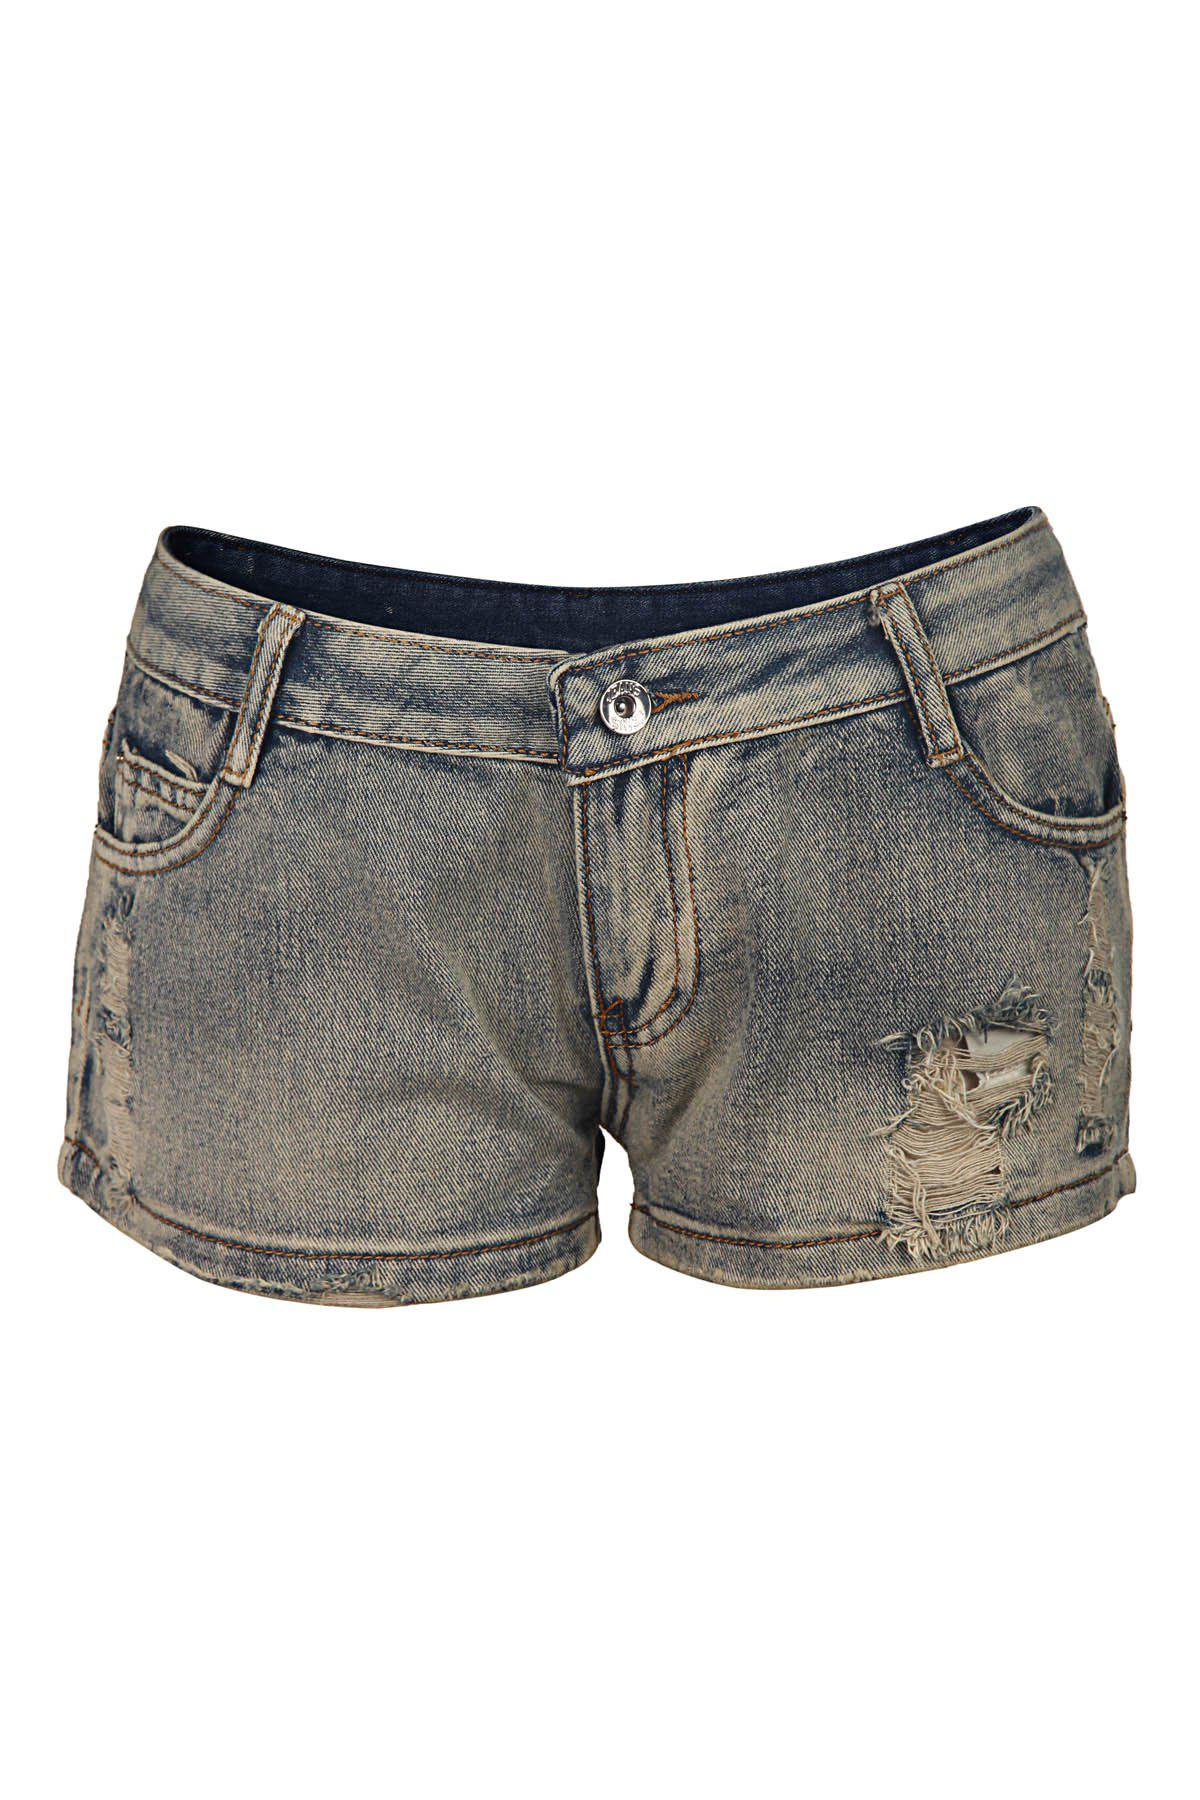 Women's Stylish Destroy Wash Straight-Leg Denim Shorts - BLUE 29